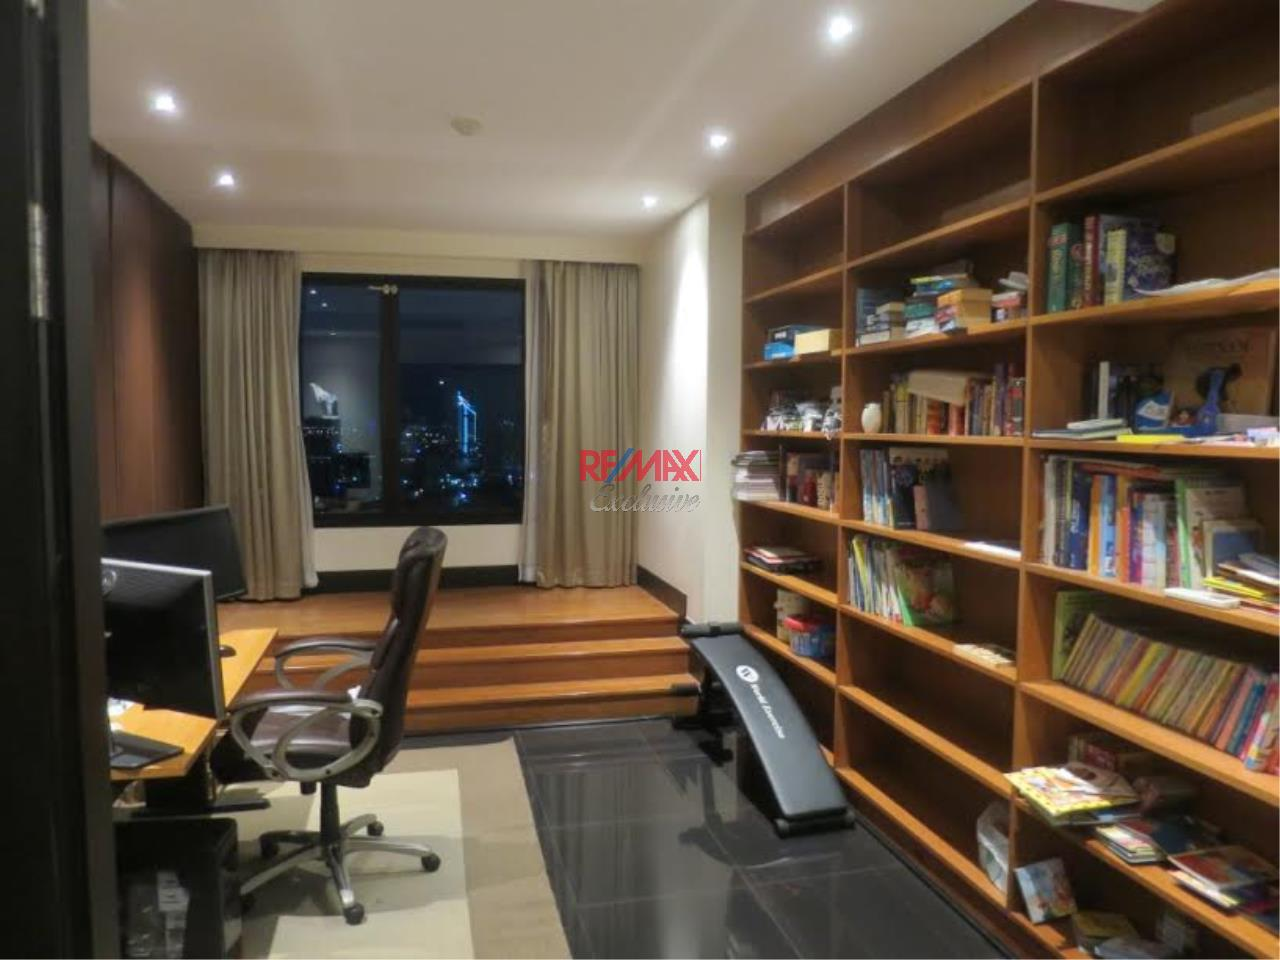 RE/MAX Exclusive Agency's Royal River Place Condo, 3 Bedrooms, 3 Bathrooms, Only For Sale 20,000,000 THB 9